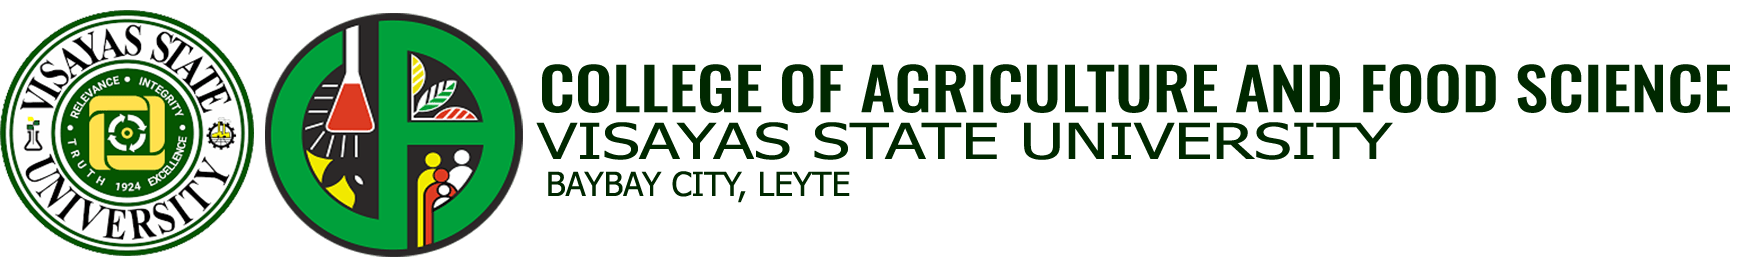 Visayas State University College of Agriculture and Food Science